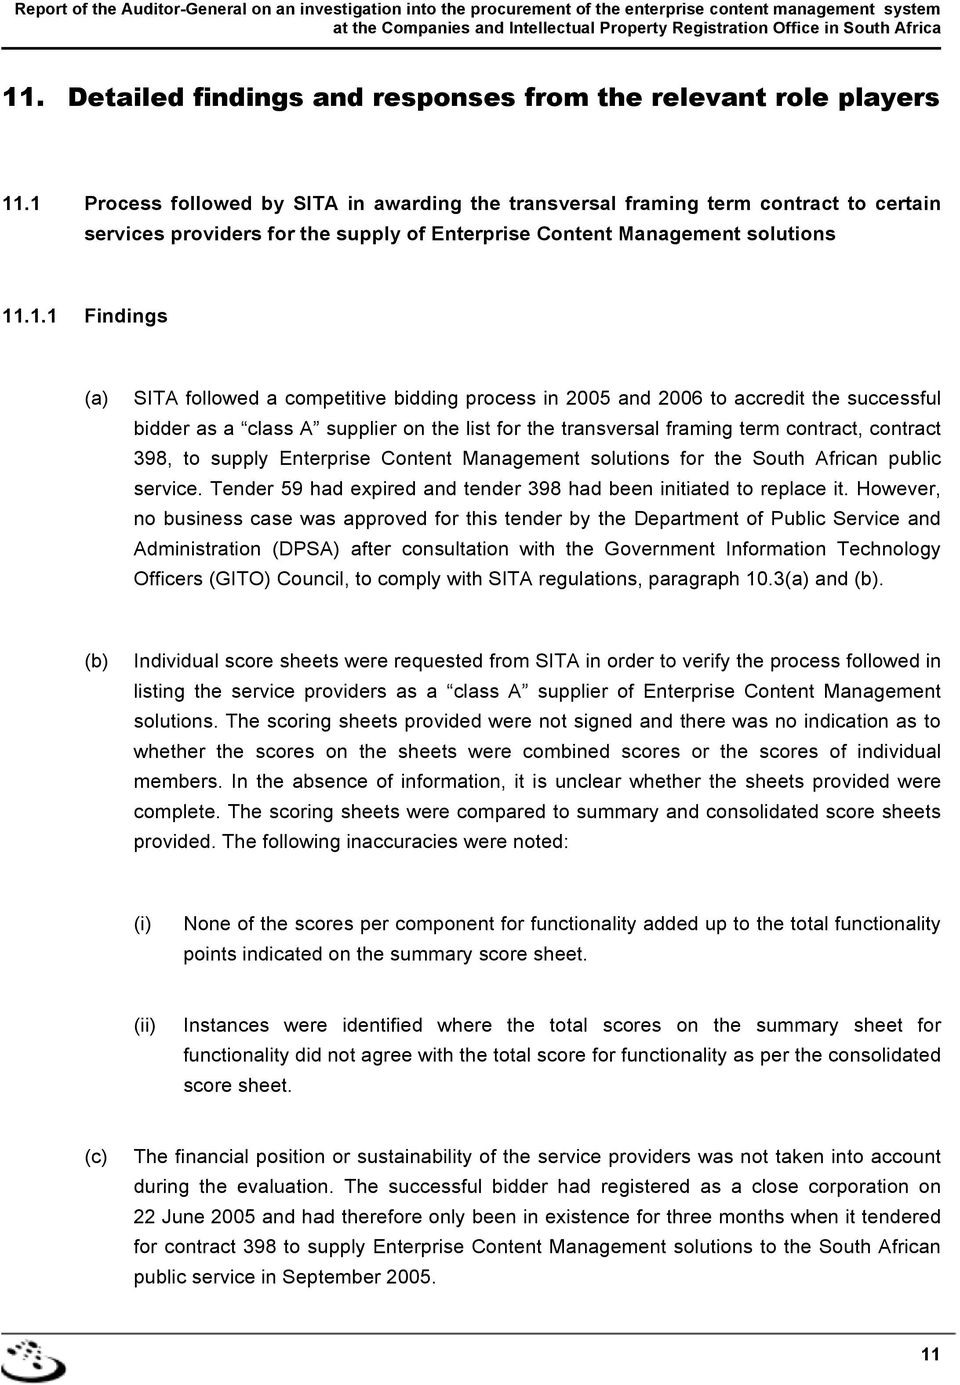 competitive bidding process in 2005 and 2006 to accredit the successful bidder as a class A supplier on the list for the transversal framing term contract, contract 398, to supply Enterprise Content